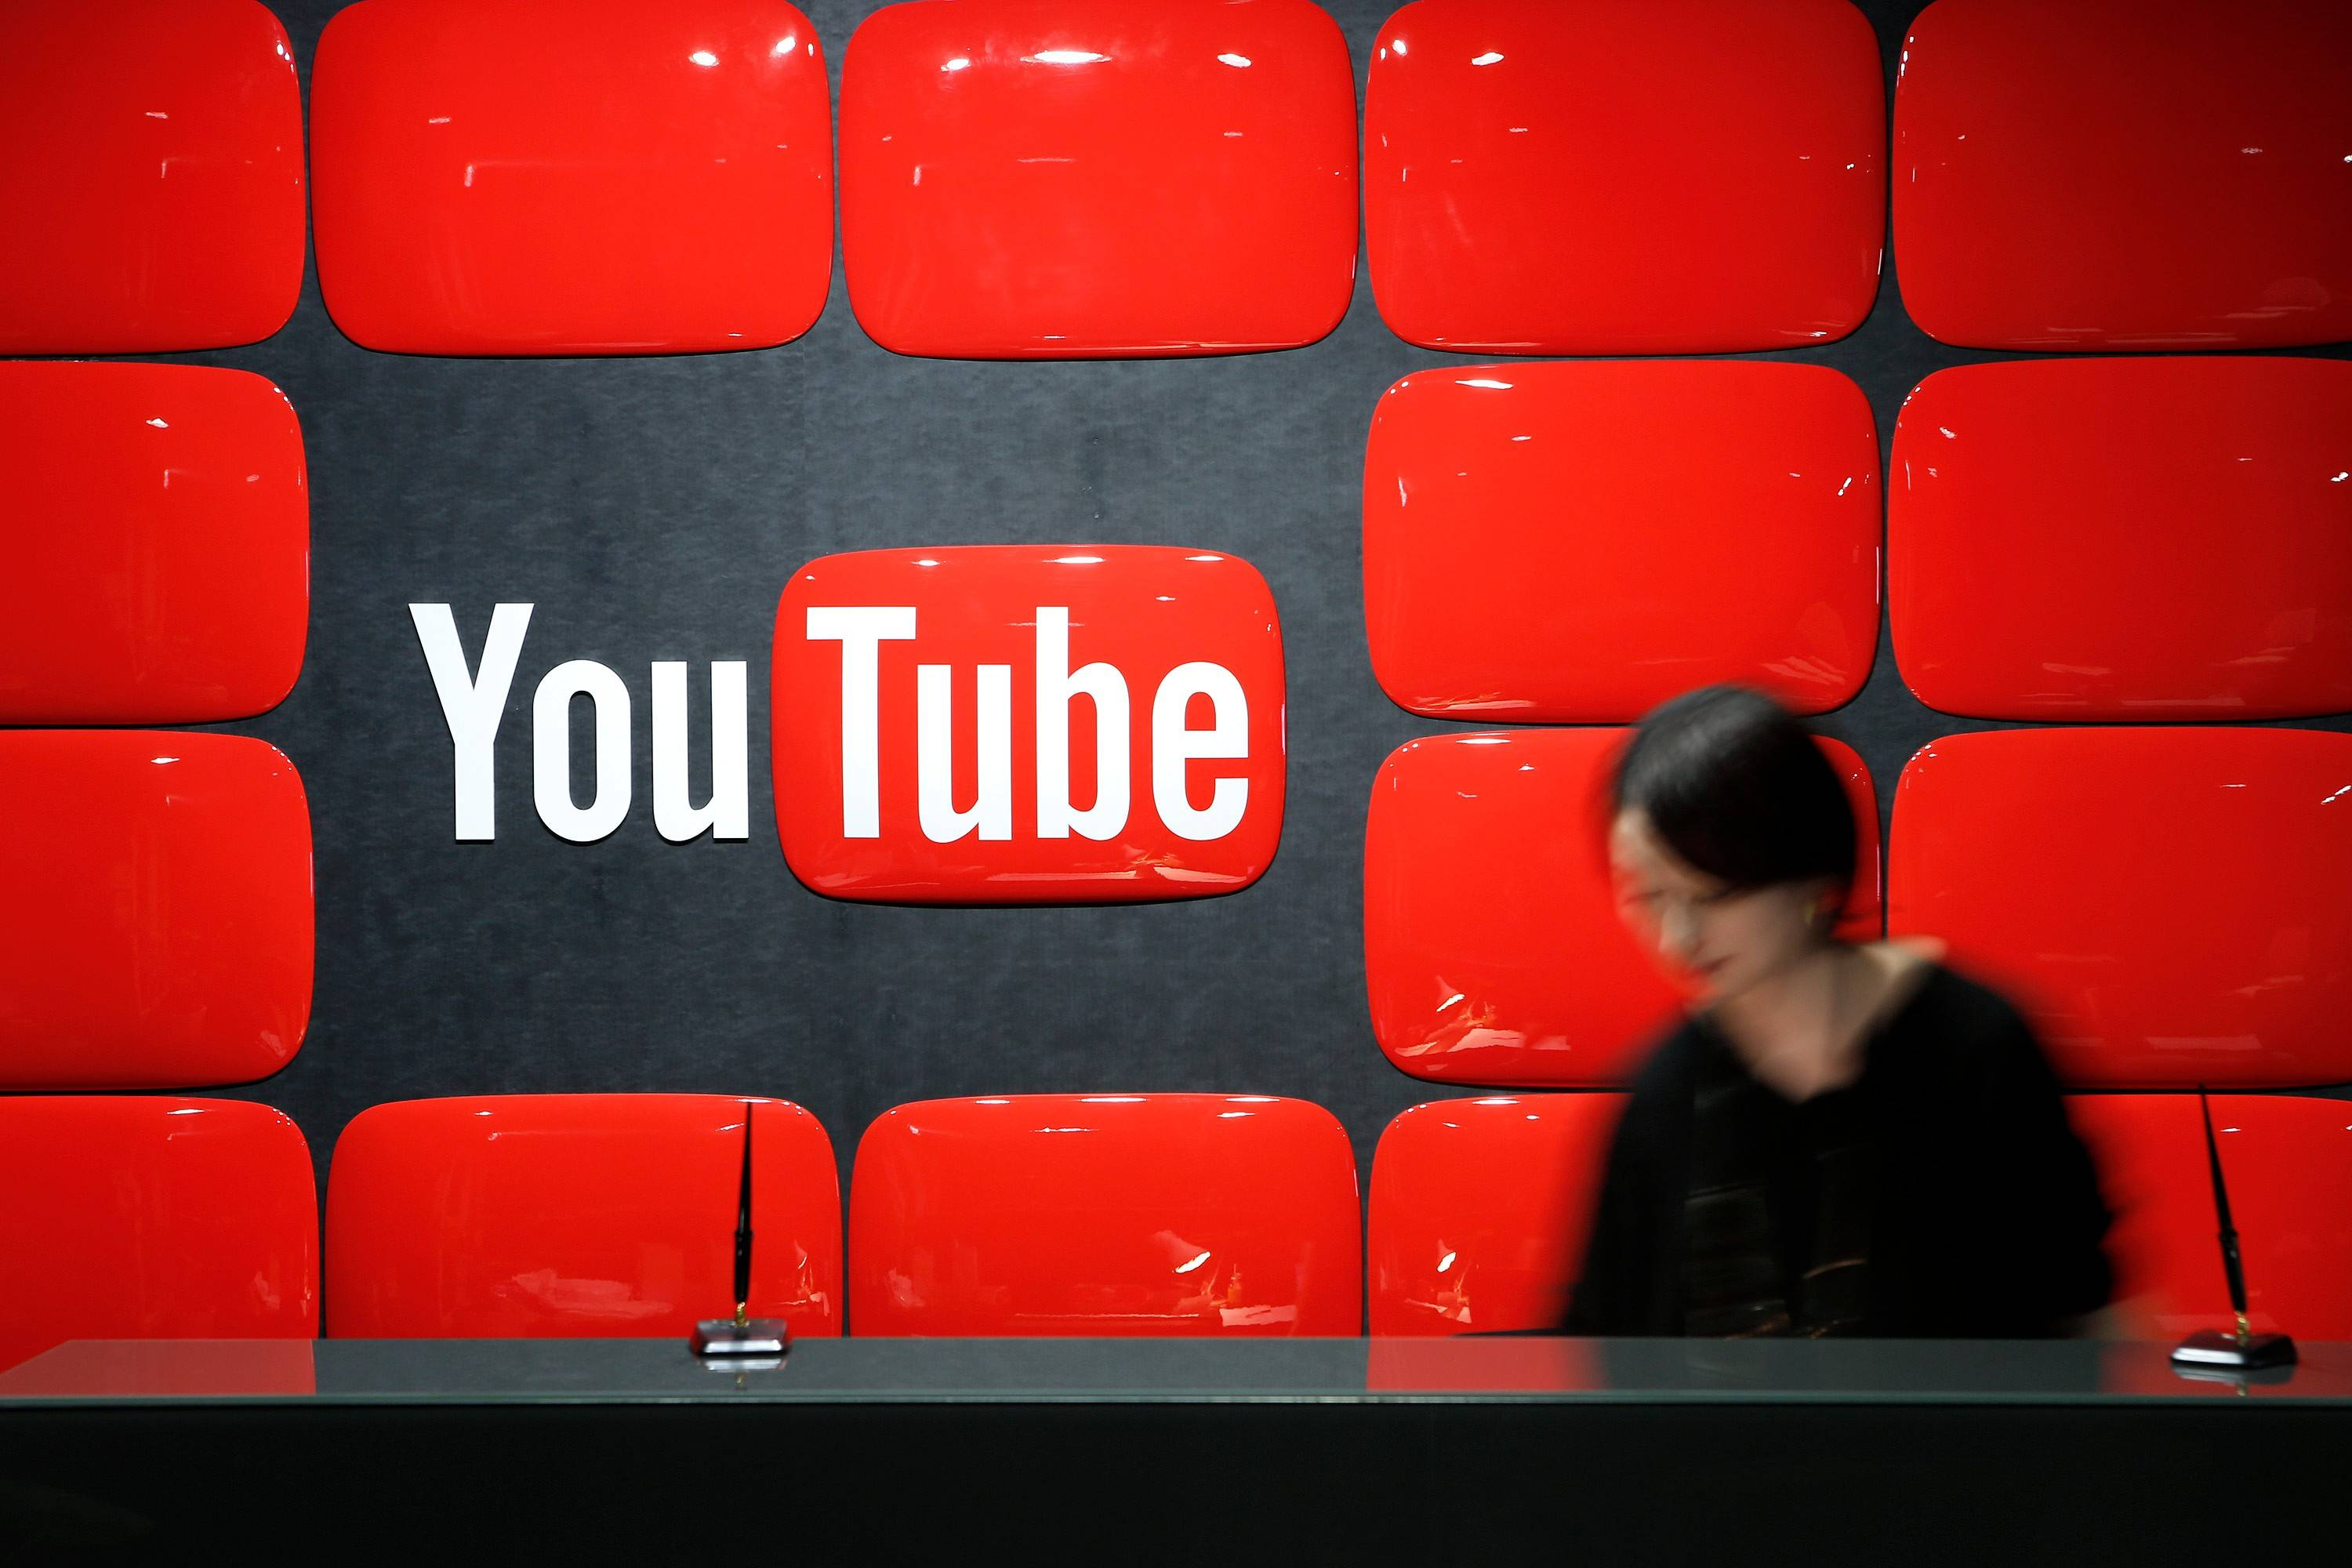 YouTube to launch music service